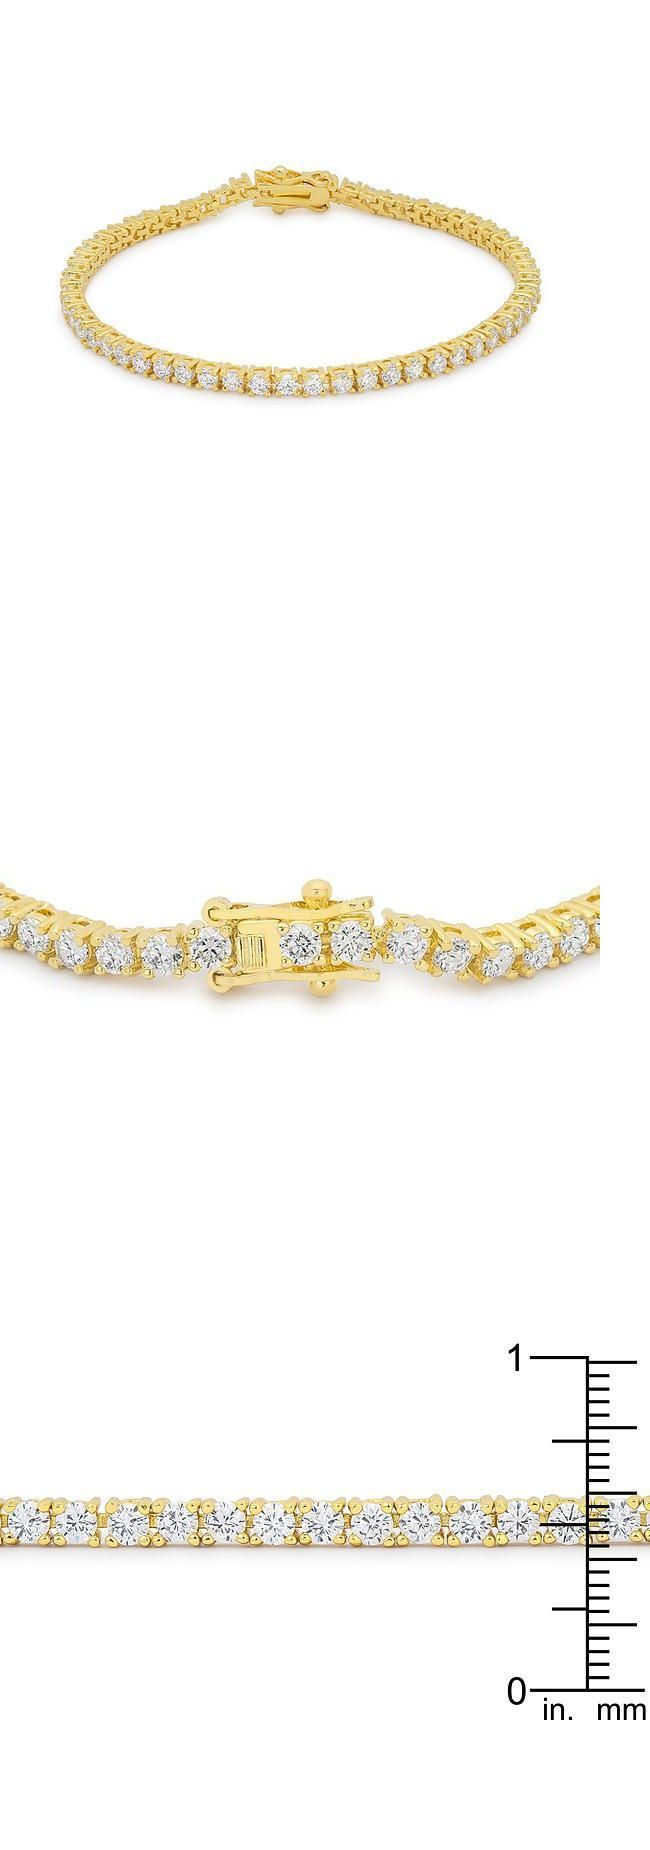 carat round cut diamond tennis bracelet k gold finish diamond